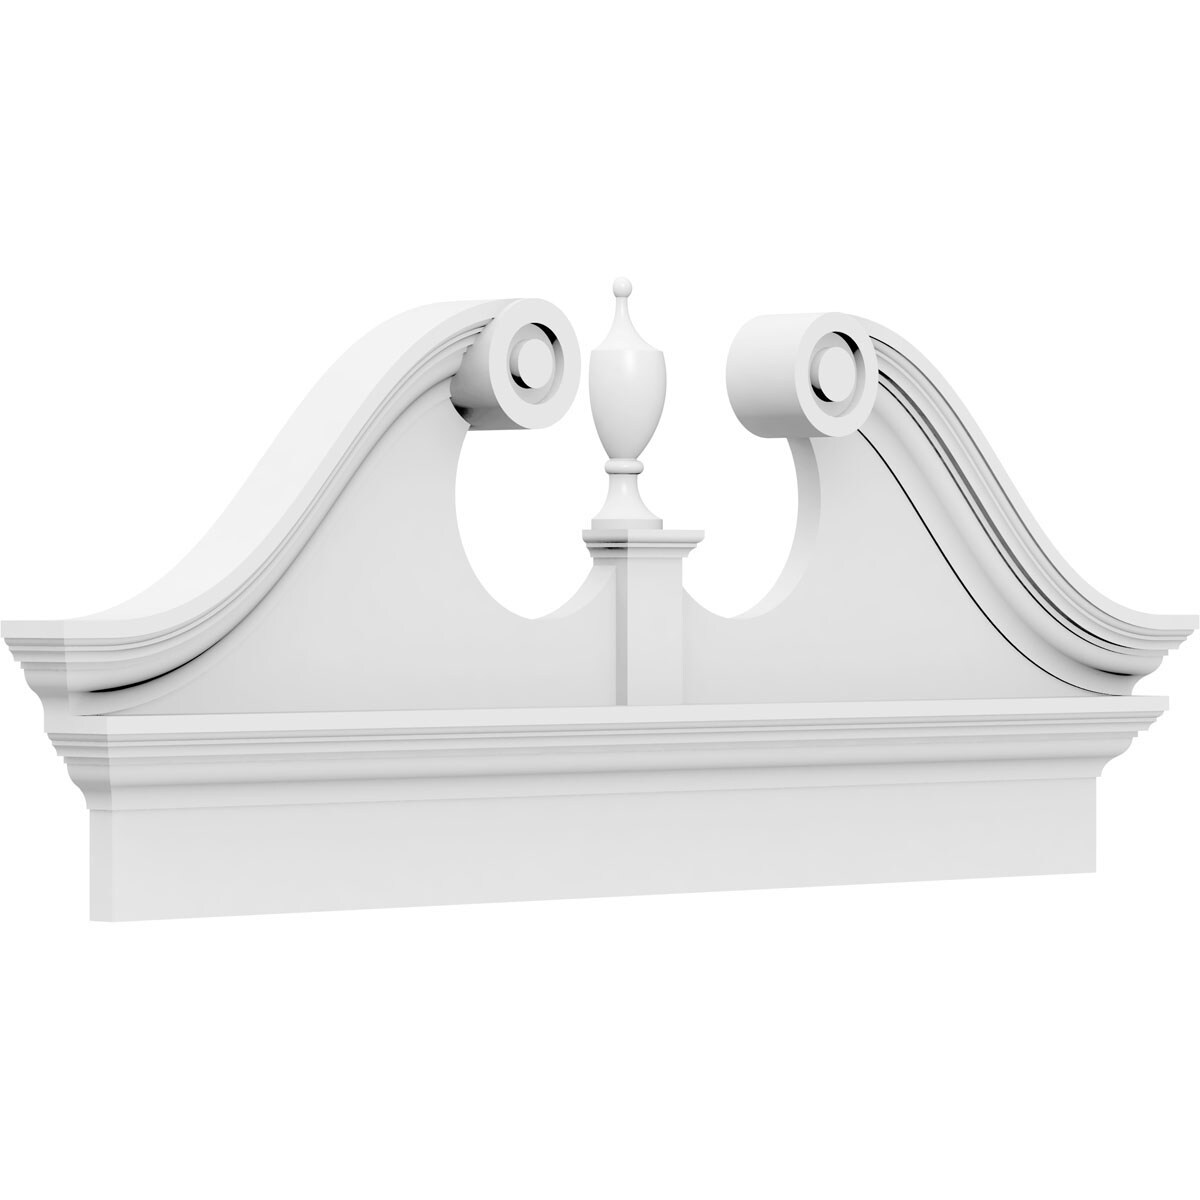 Ekena Millwork Rams Head 6-ft 2-in x 25-3/8-in Unfinished PVC Pediment Entry Door Casing Accent in White | PEDPC074X255RHP00